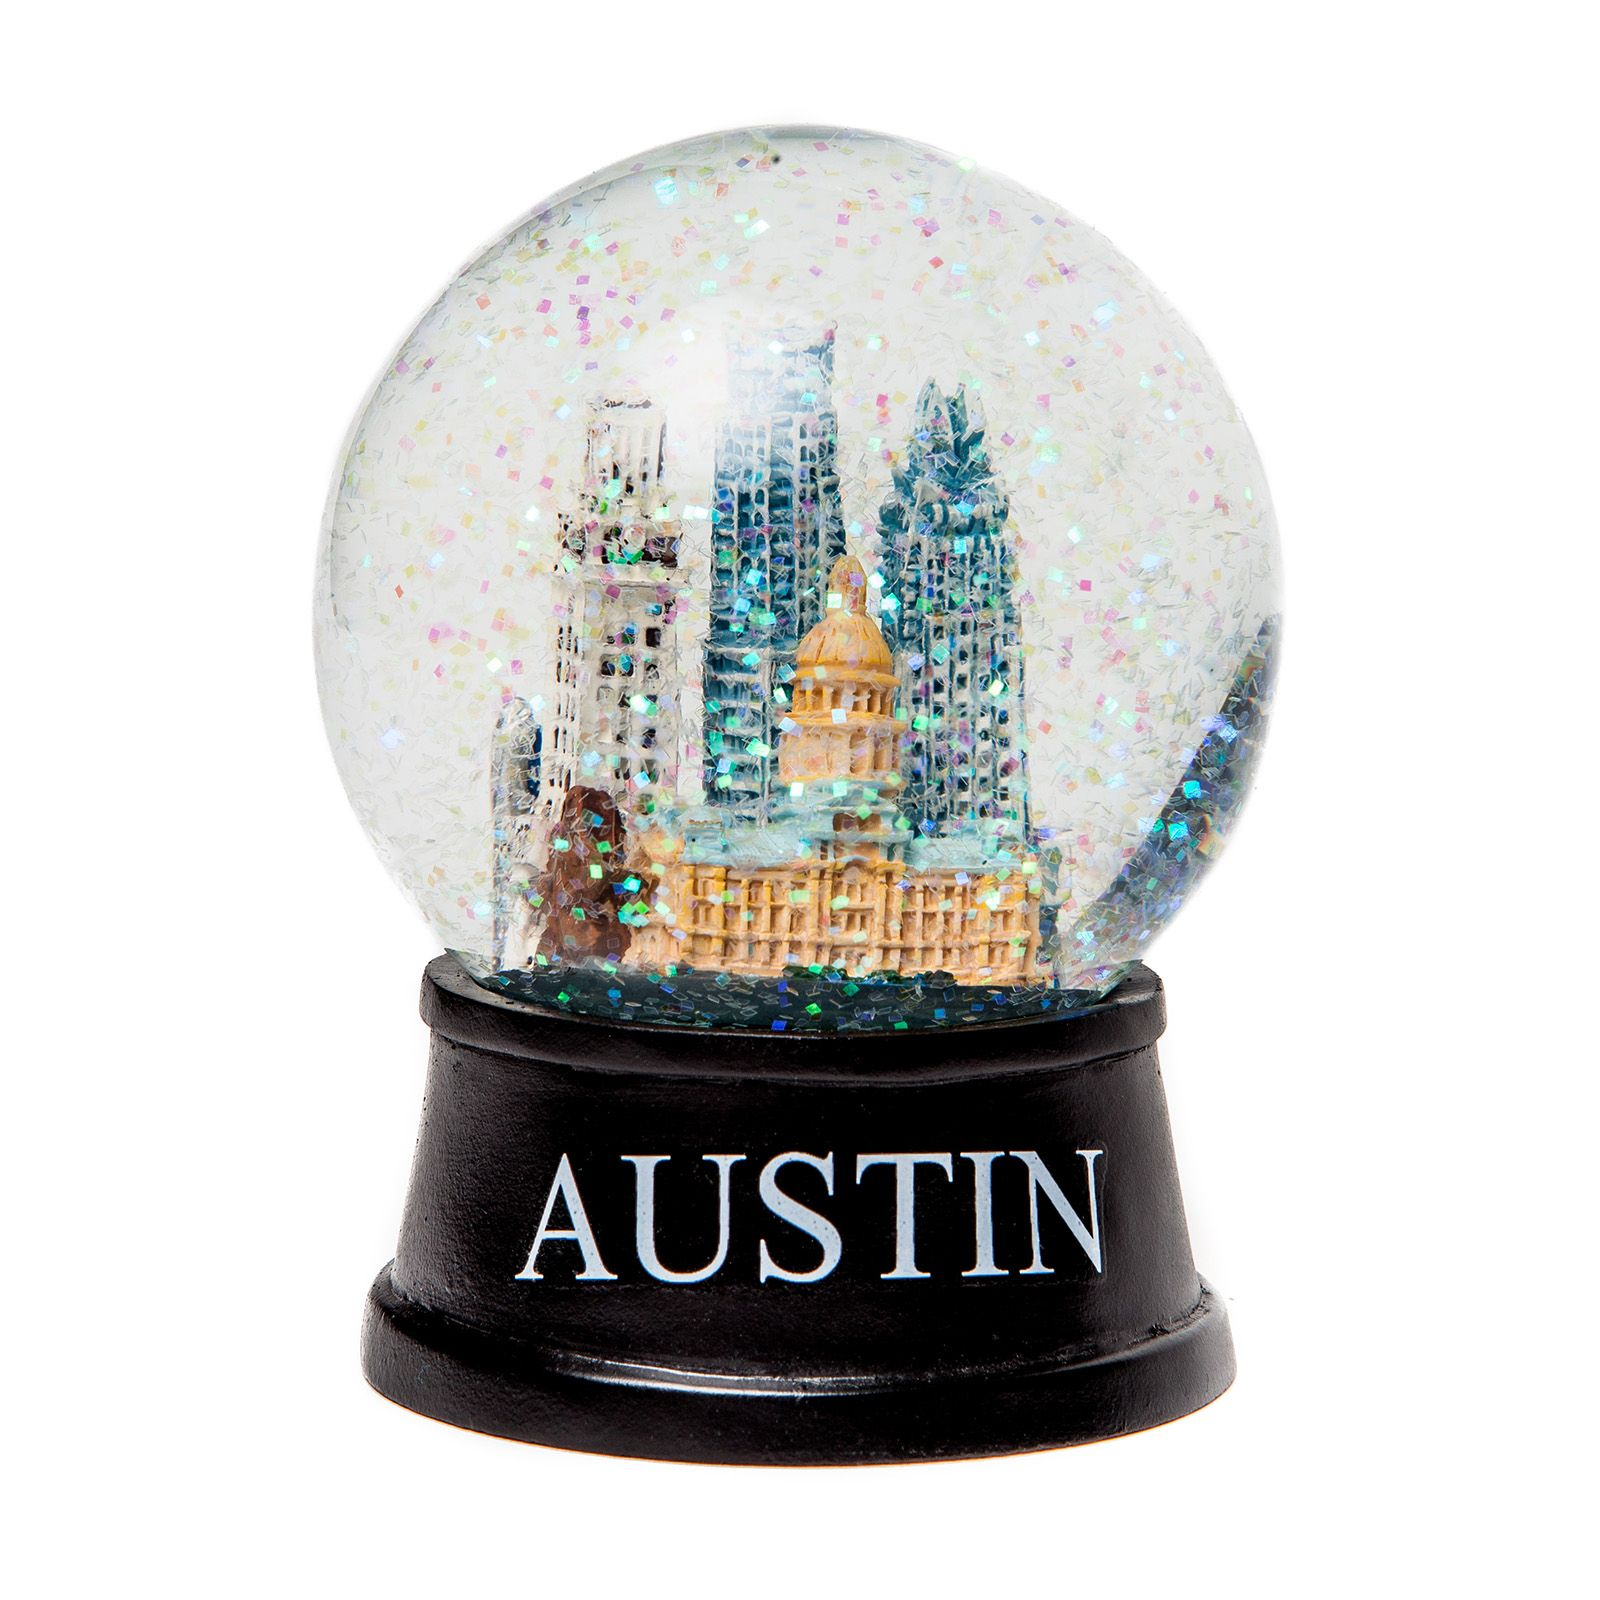 Austin Texas Small Glass Snow Globe